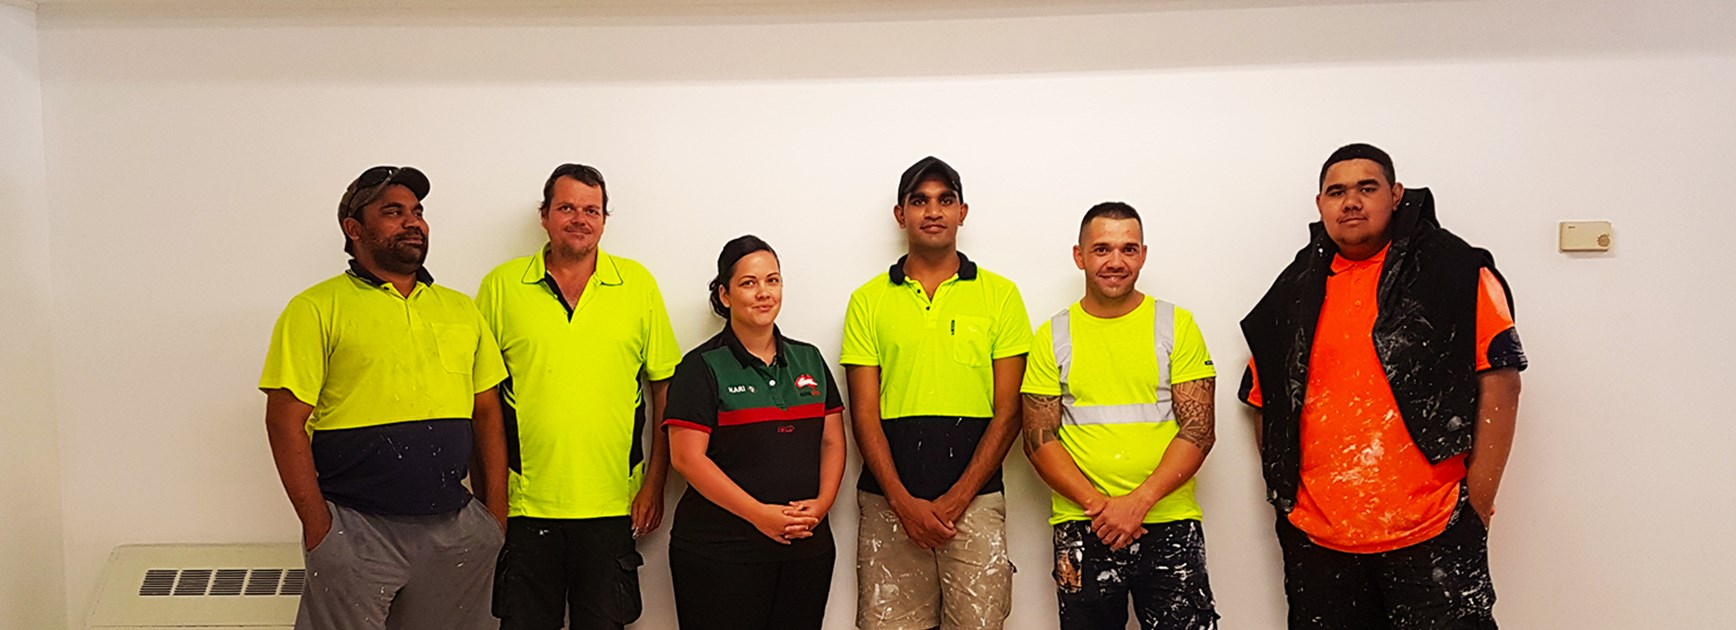 Souths Cares celebrates year of success for Aboriginal Employment Programs